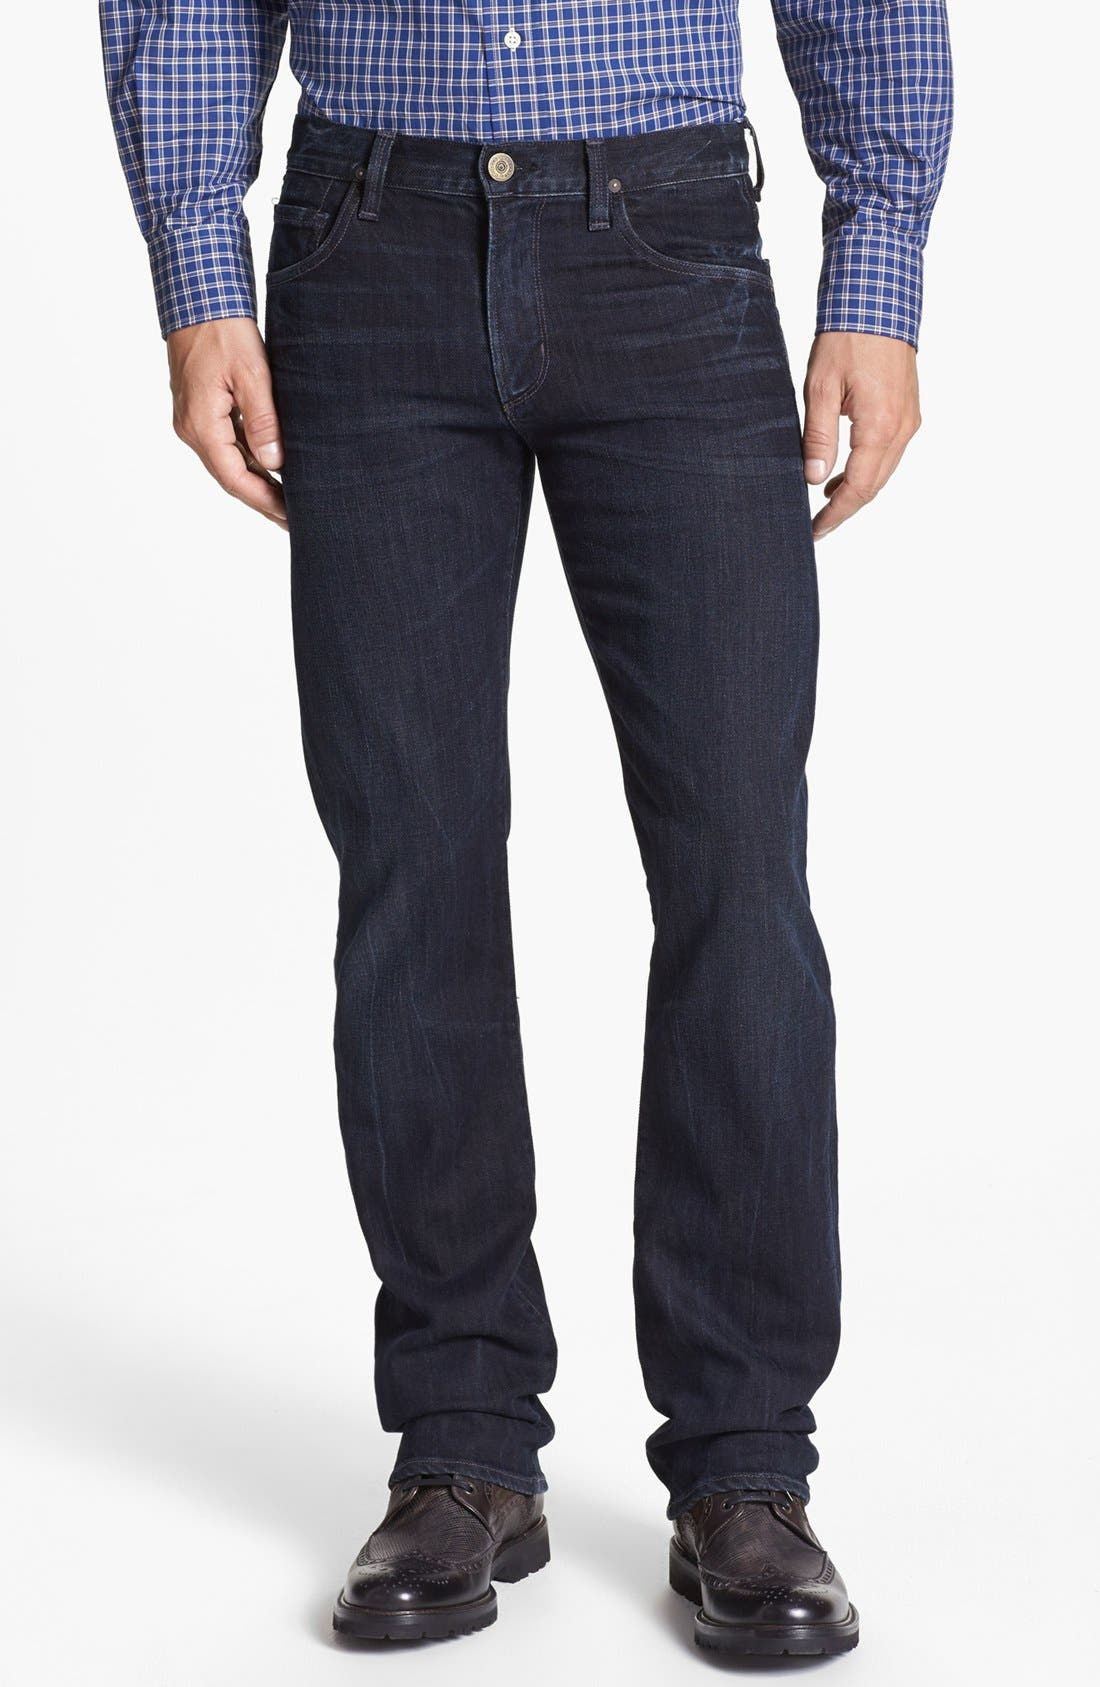 Alternate Image 1 Selected - Citizens of Humanity 'Sid' Straight Leg Jeans (Troy)